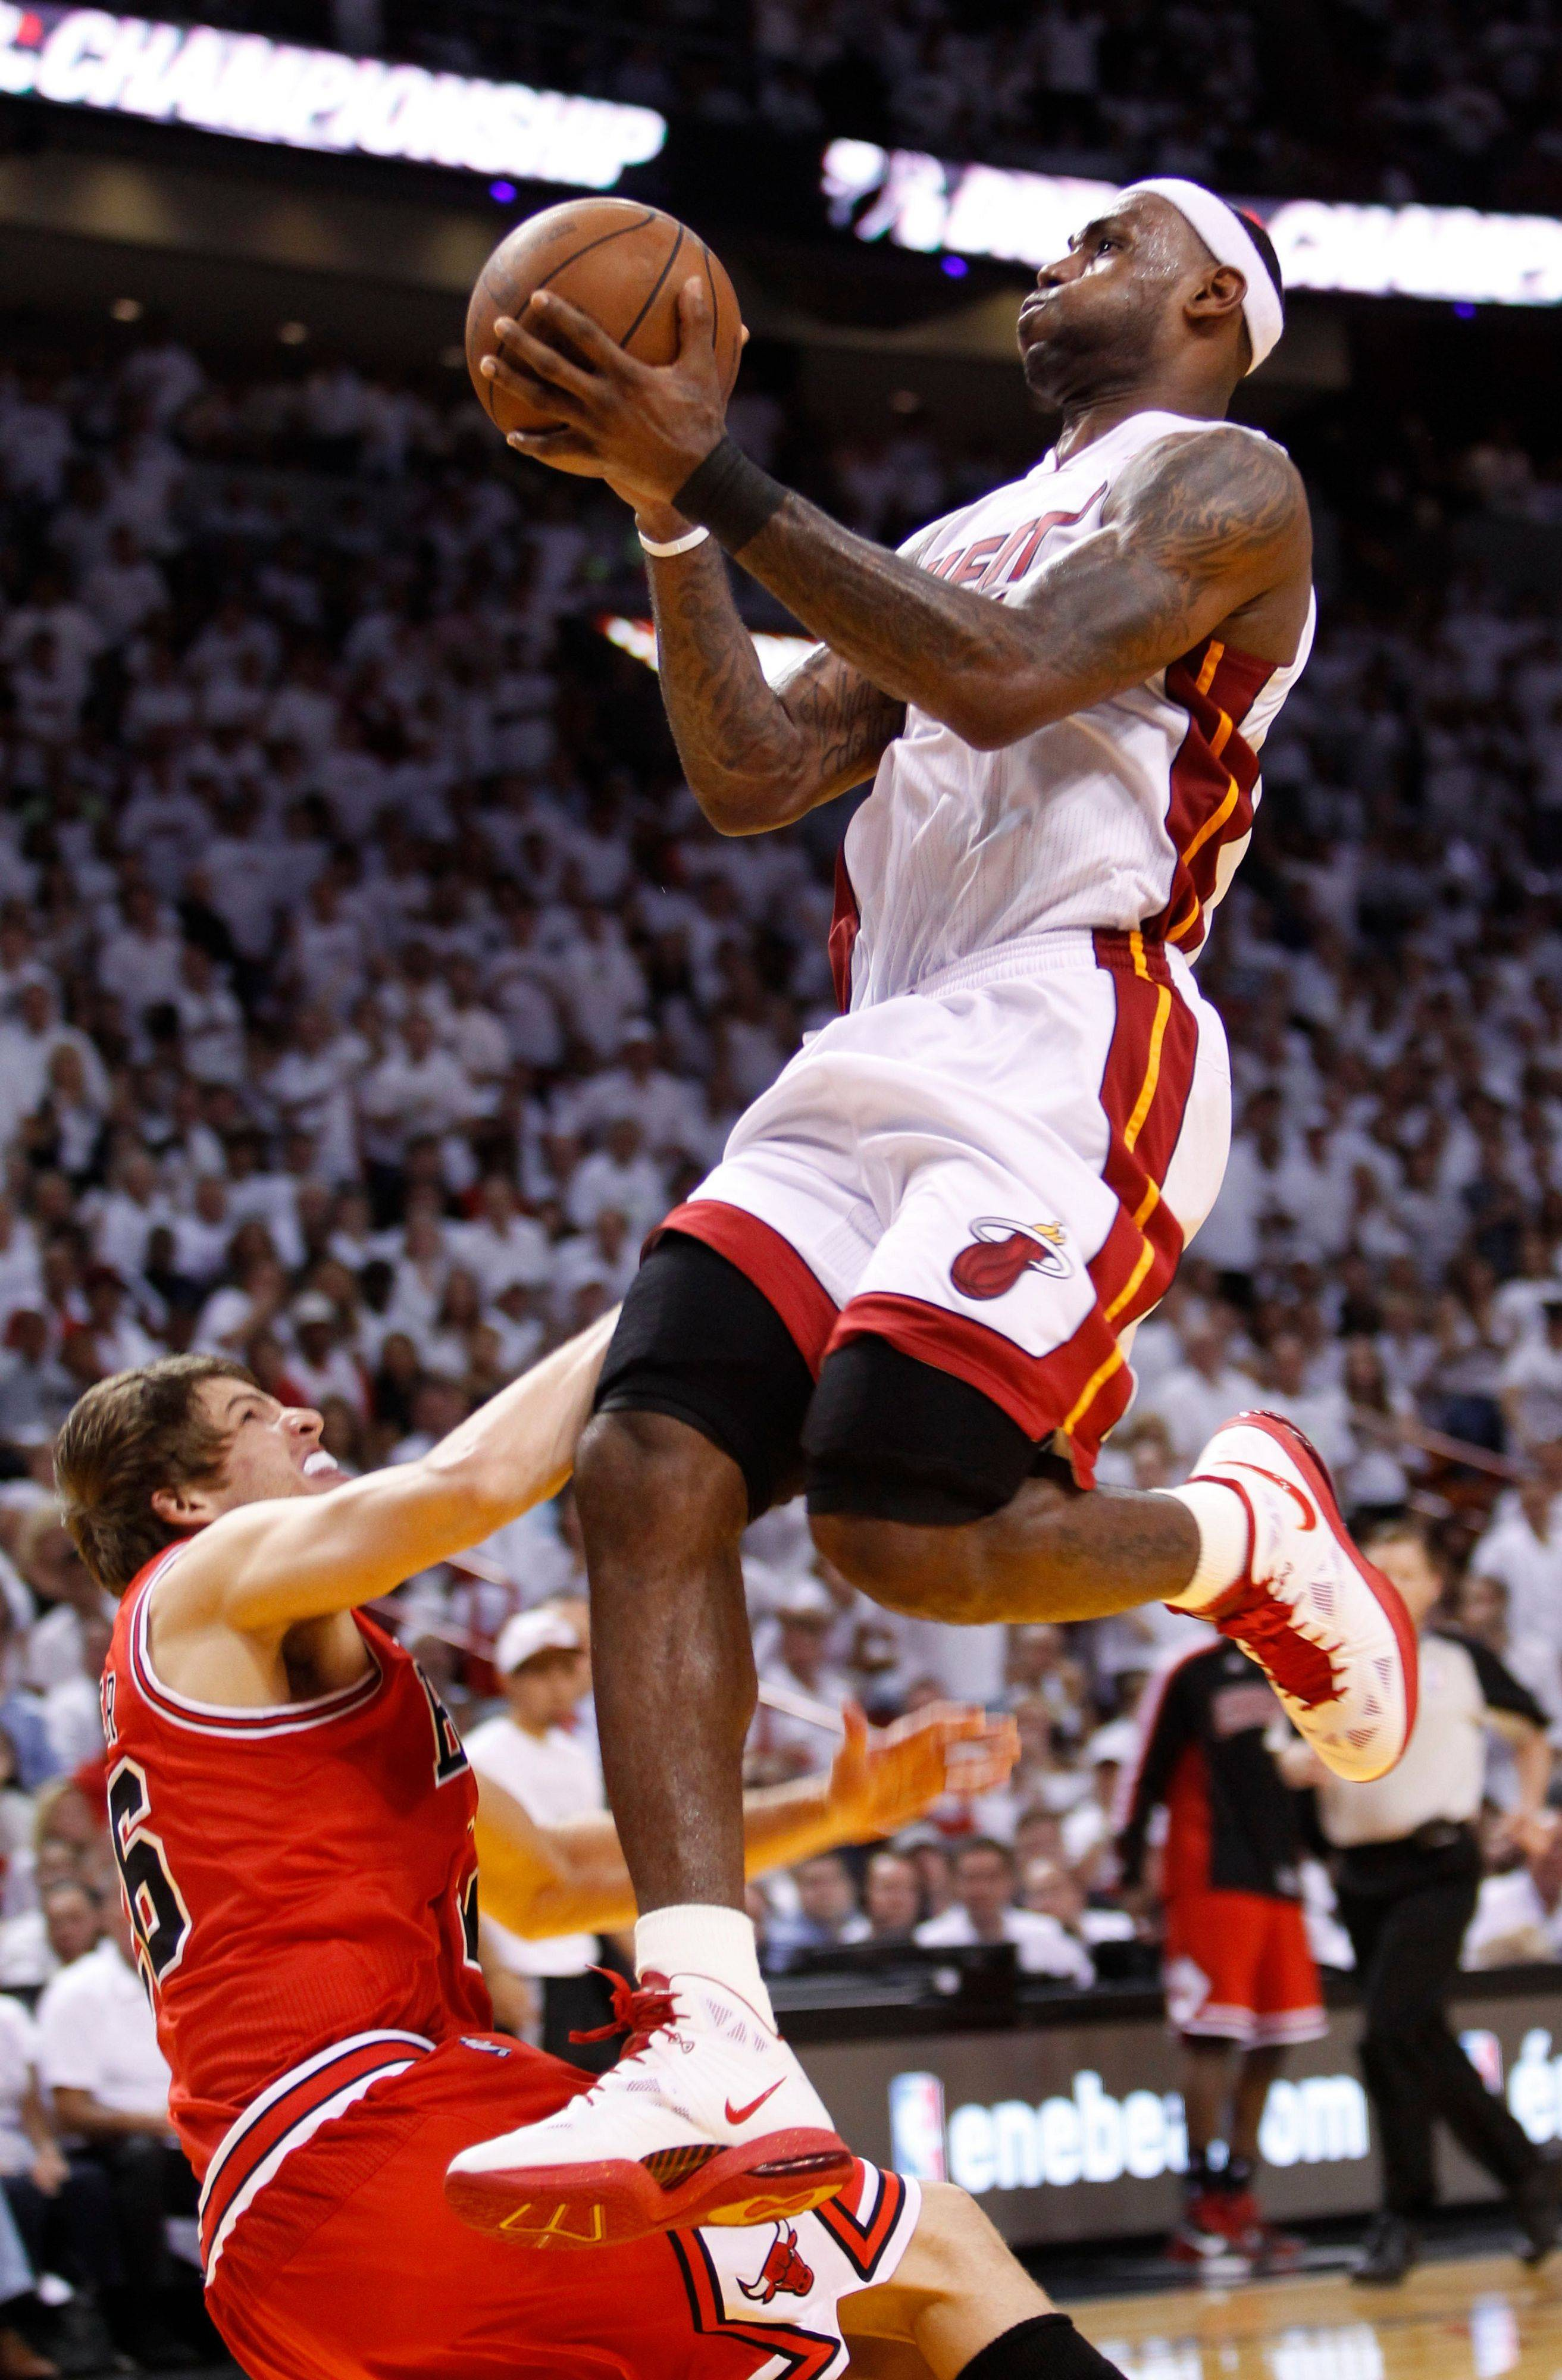 Miami Heat's LeBron James shoots over Chicago Bulls' Kyle Korver during the second half of Game 3 of the NBA Eastern Conference finals basketball series in Miami, Sunday, May 22, 2011. The Heat defeated the Bulls 96-85.